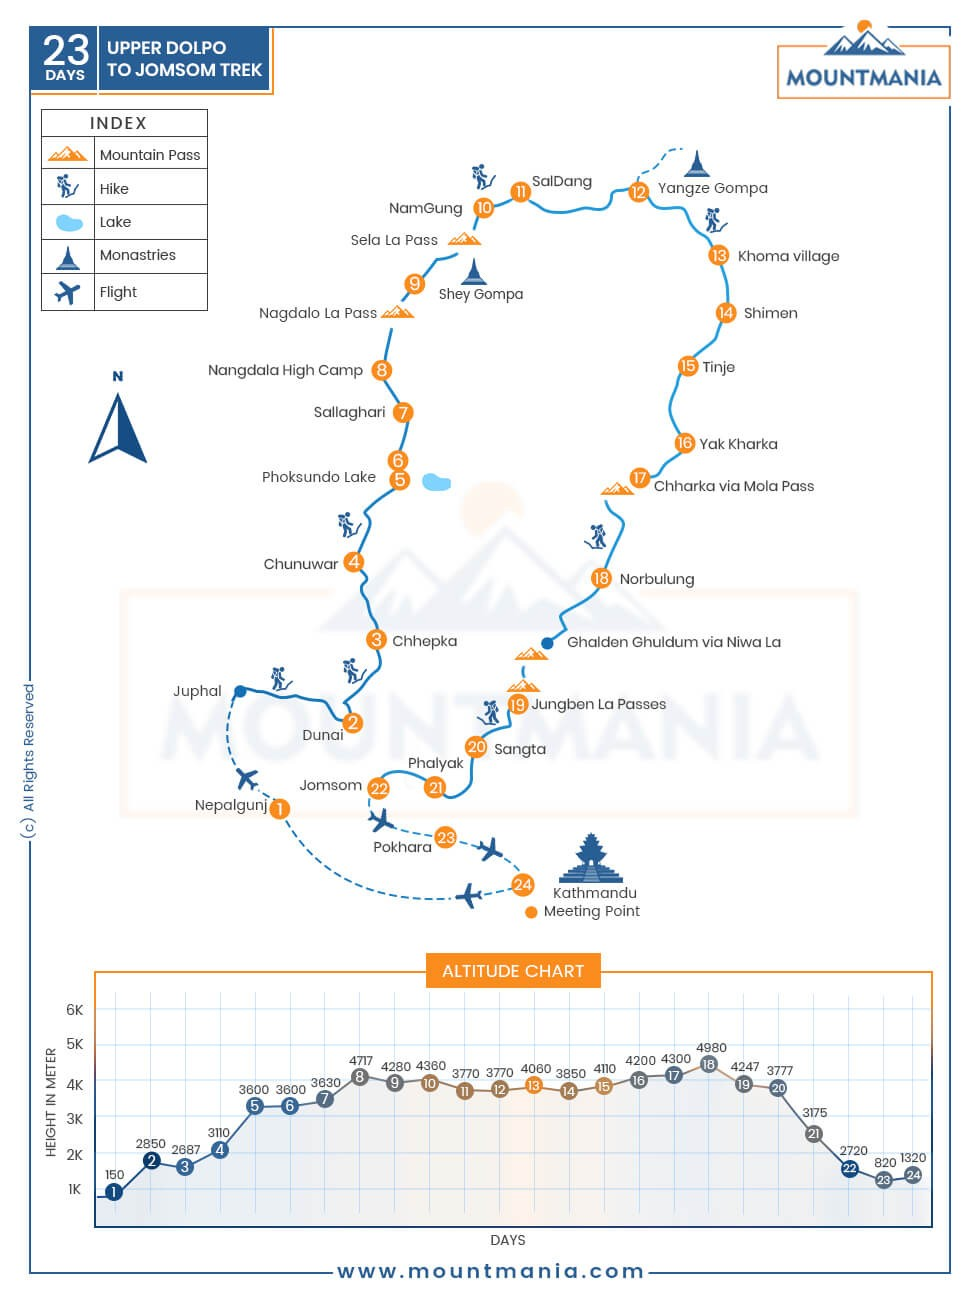 Upper Dolpo to Jomsom Trek map